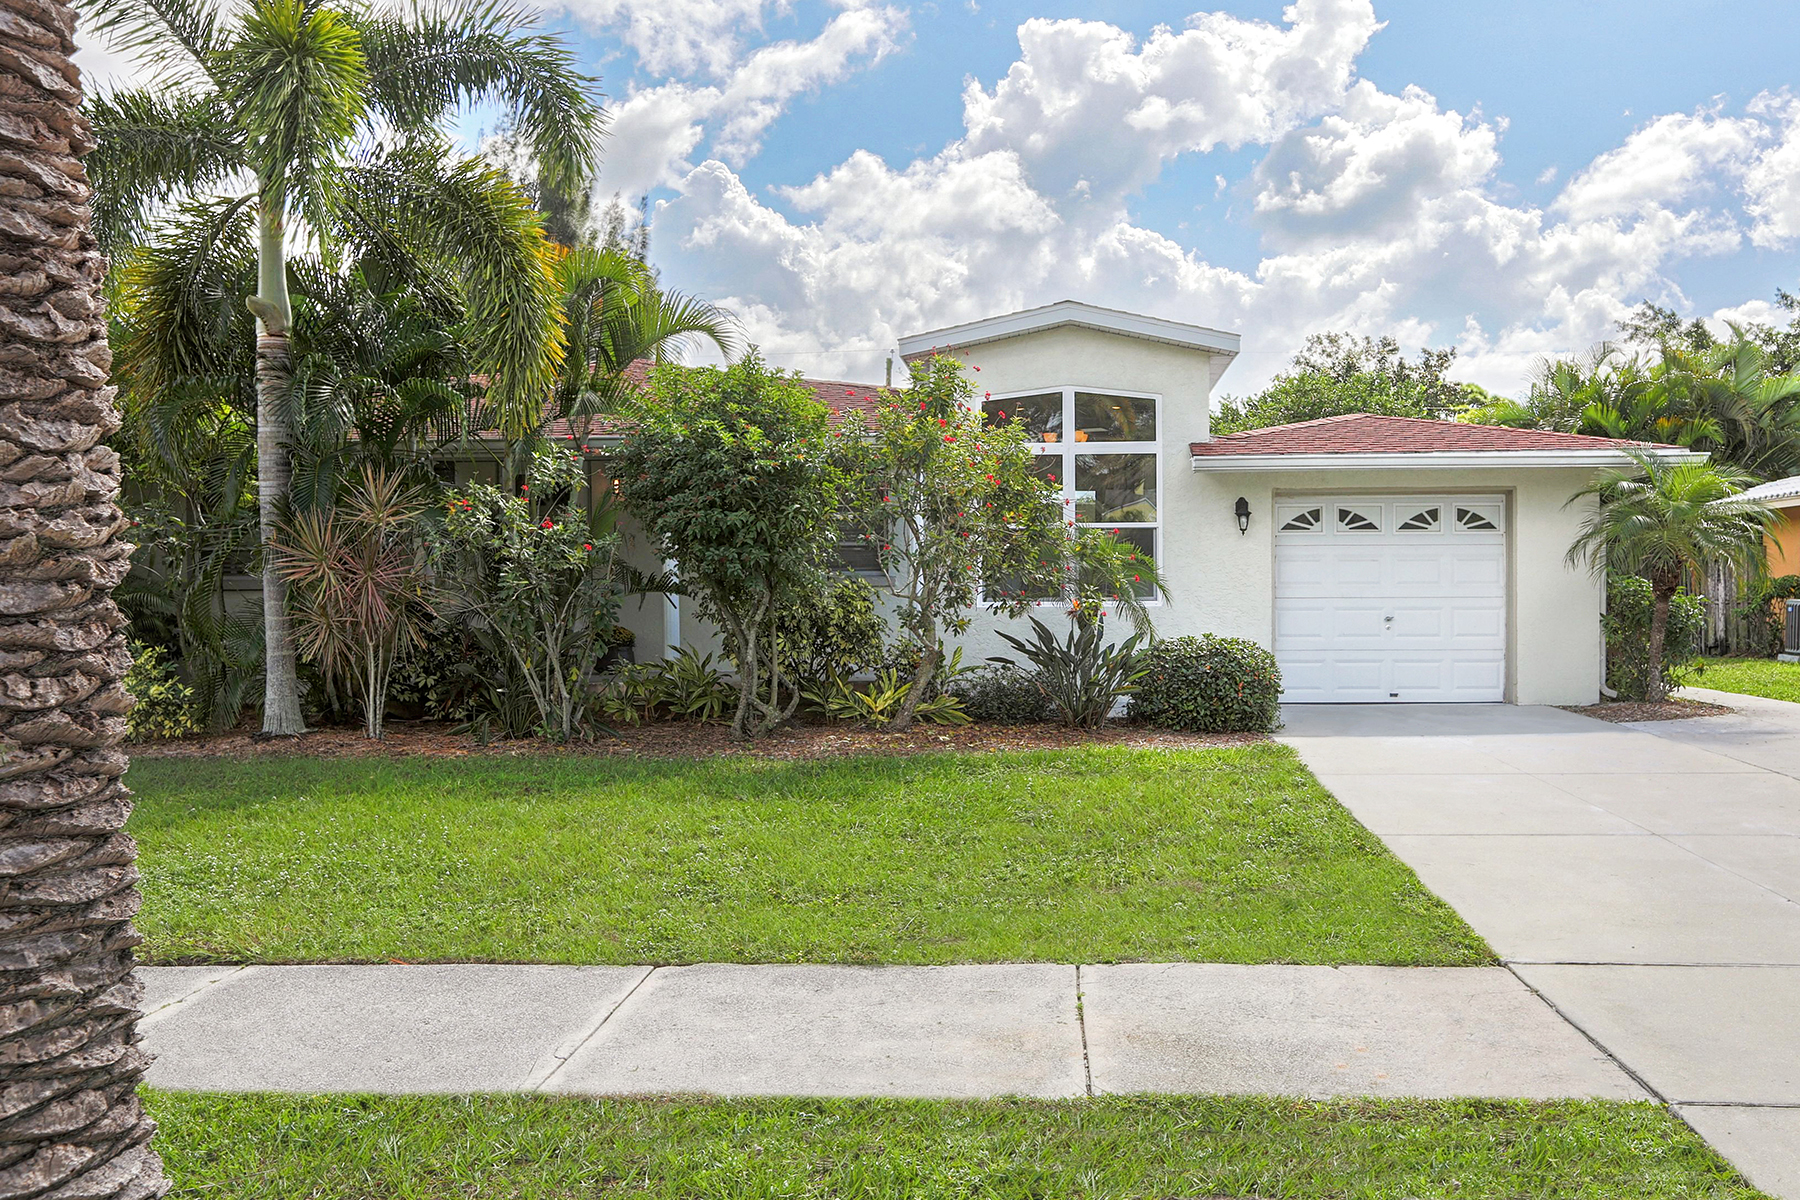 Single Family Home for Sale at VENICE ISLAND 229 San Marco Dr Venice, Florida, 34285 United States